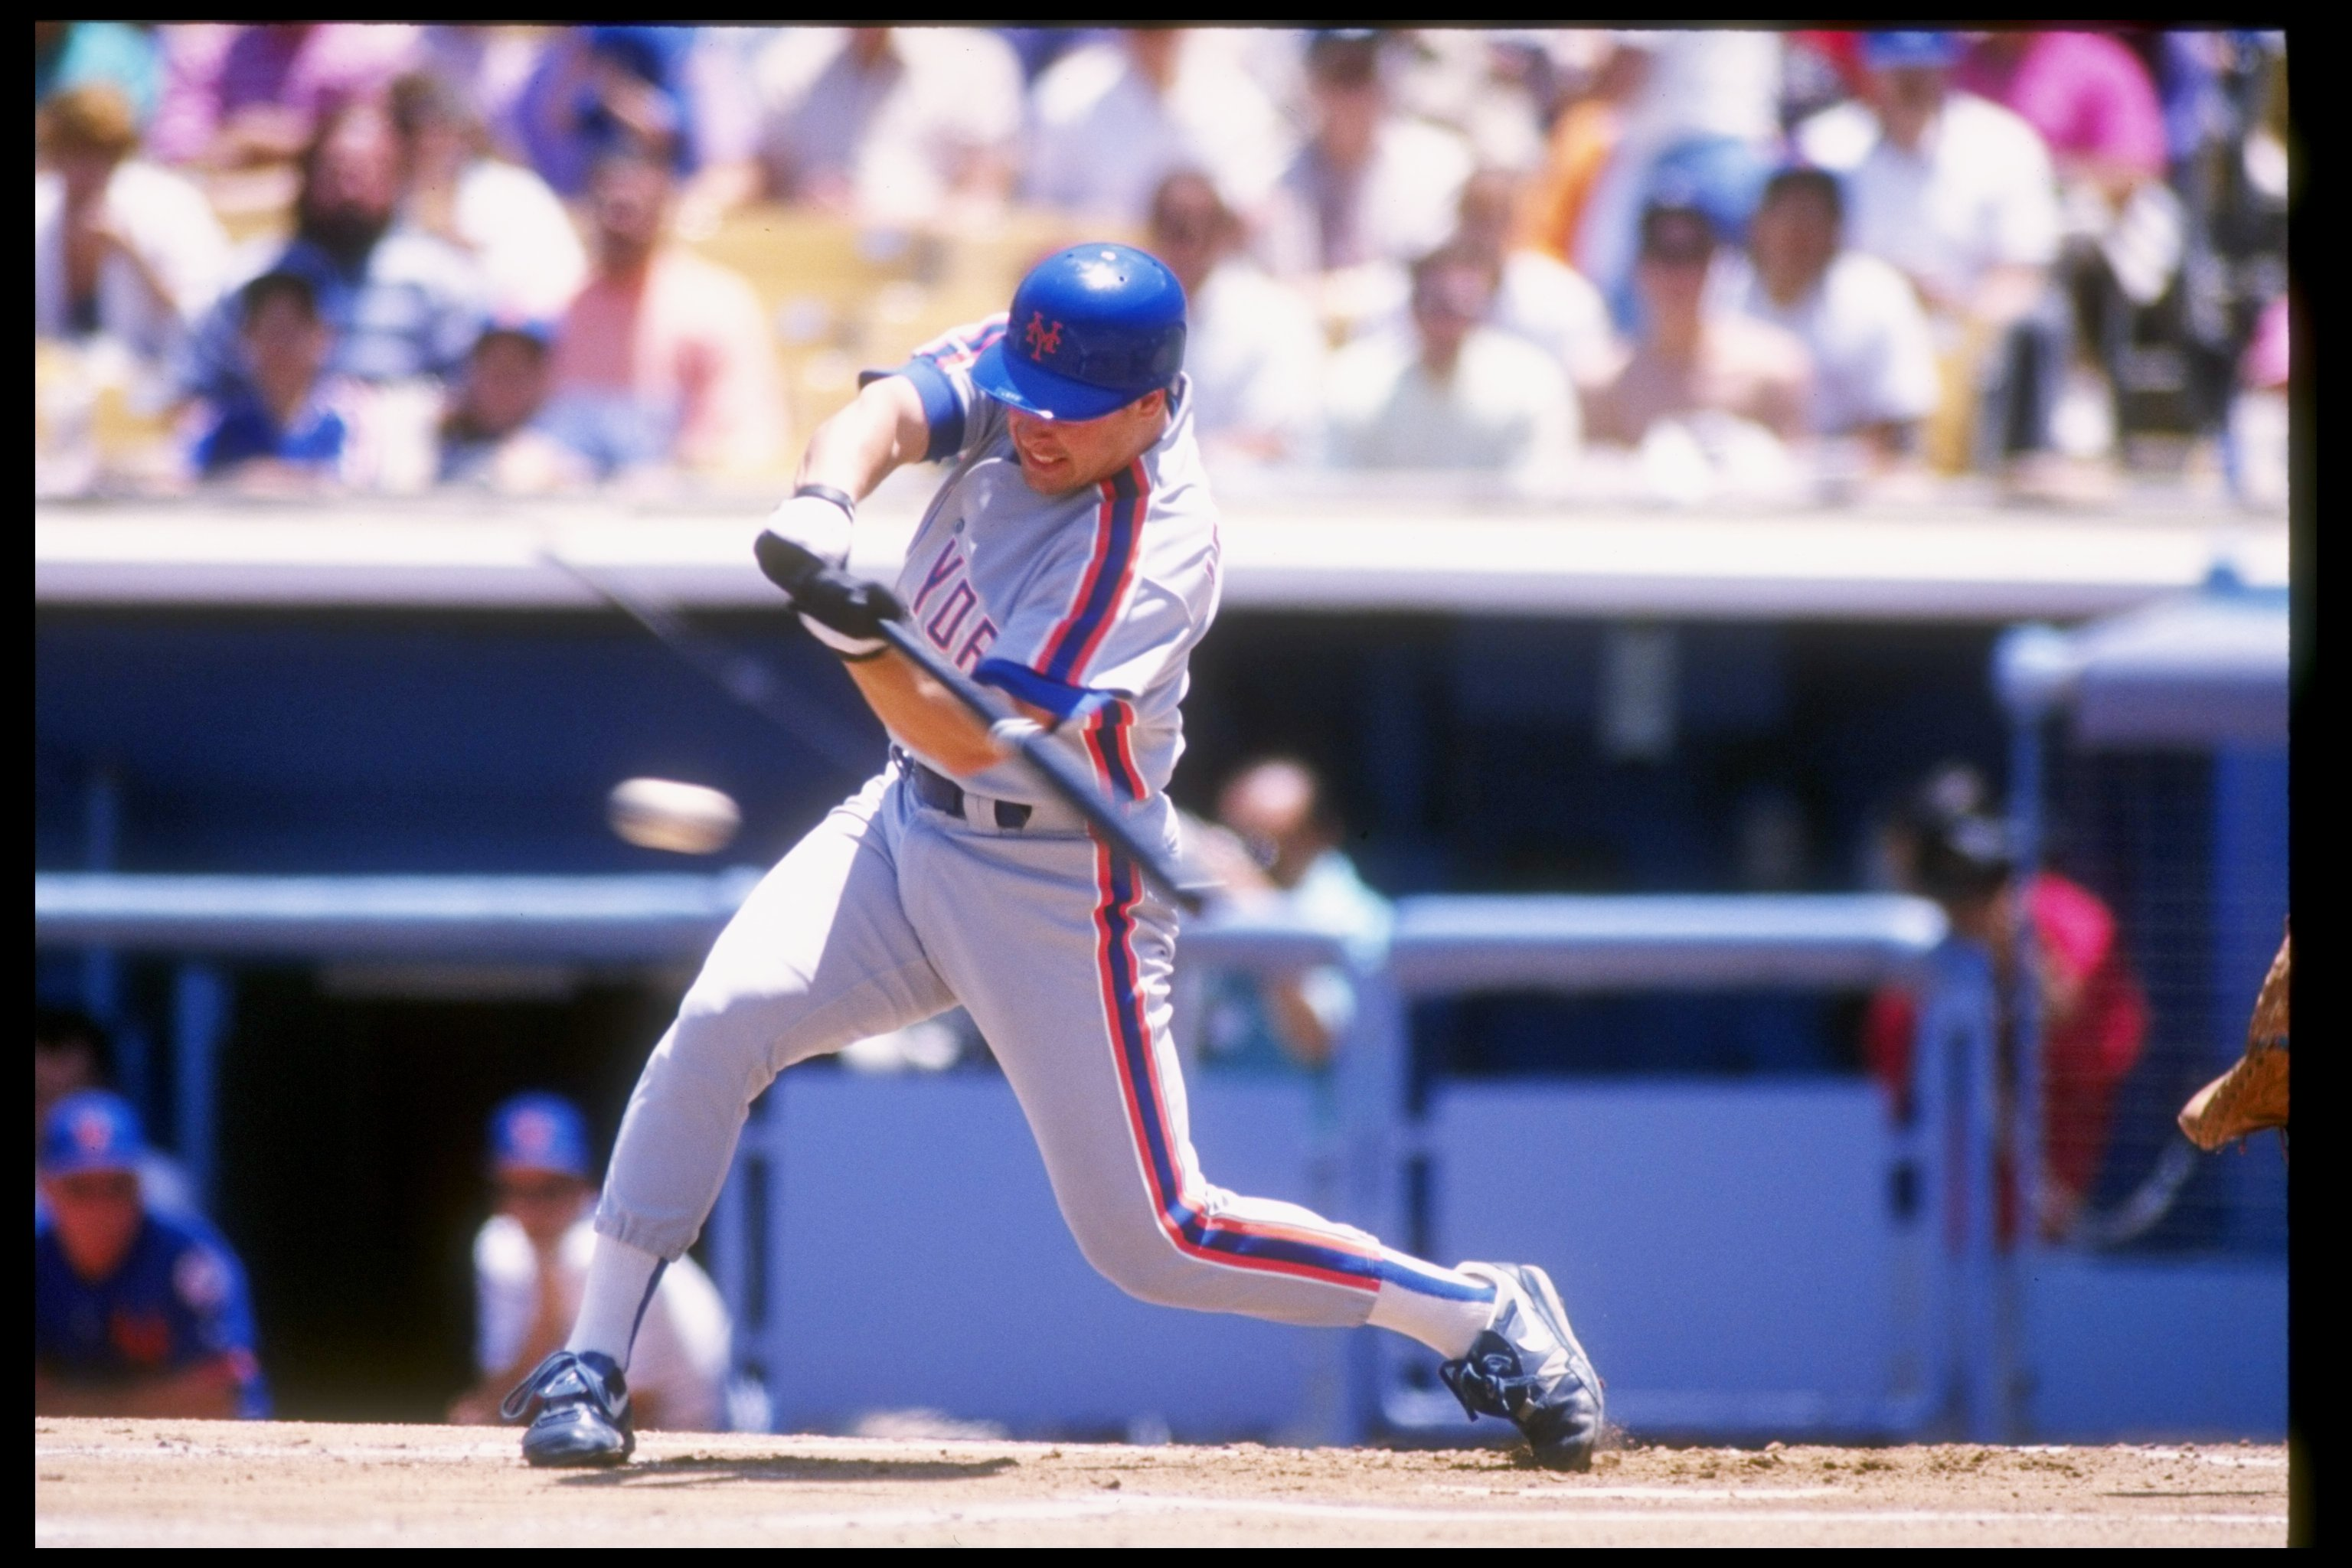 Whatever Happened to Gregg Jefferies, the Hyped-Up New York Mets Phenom?